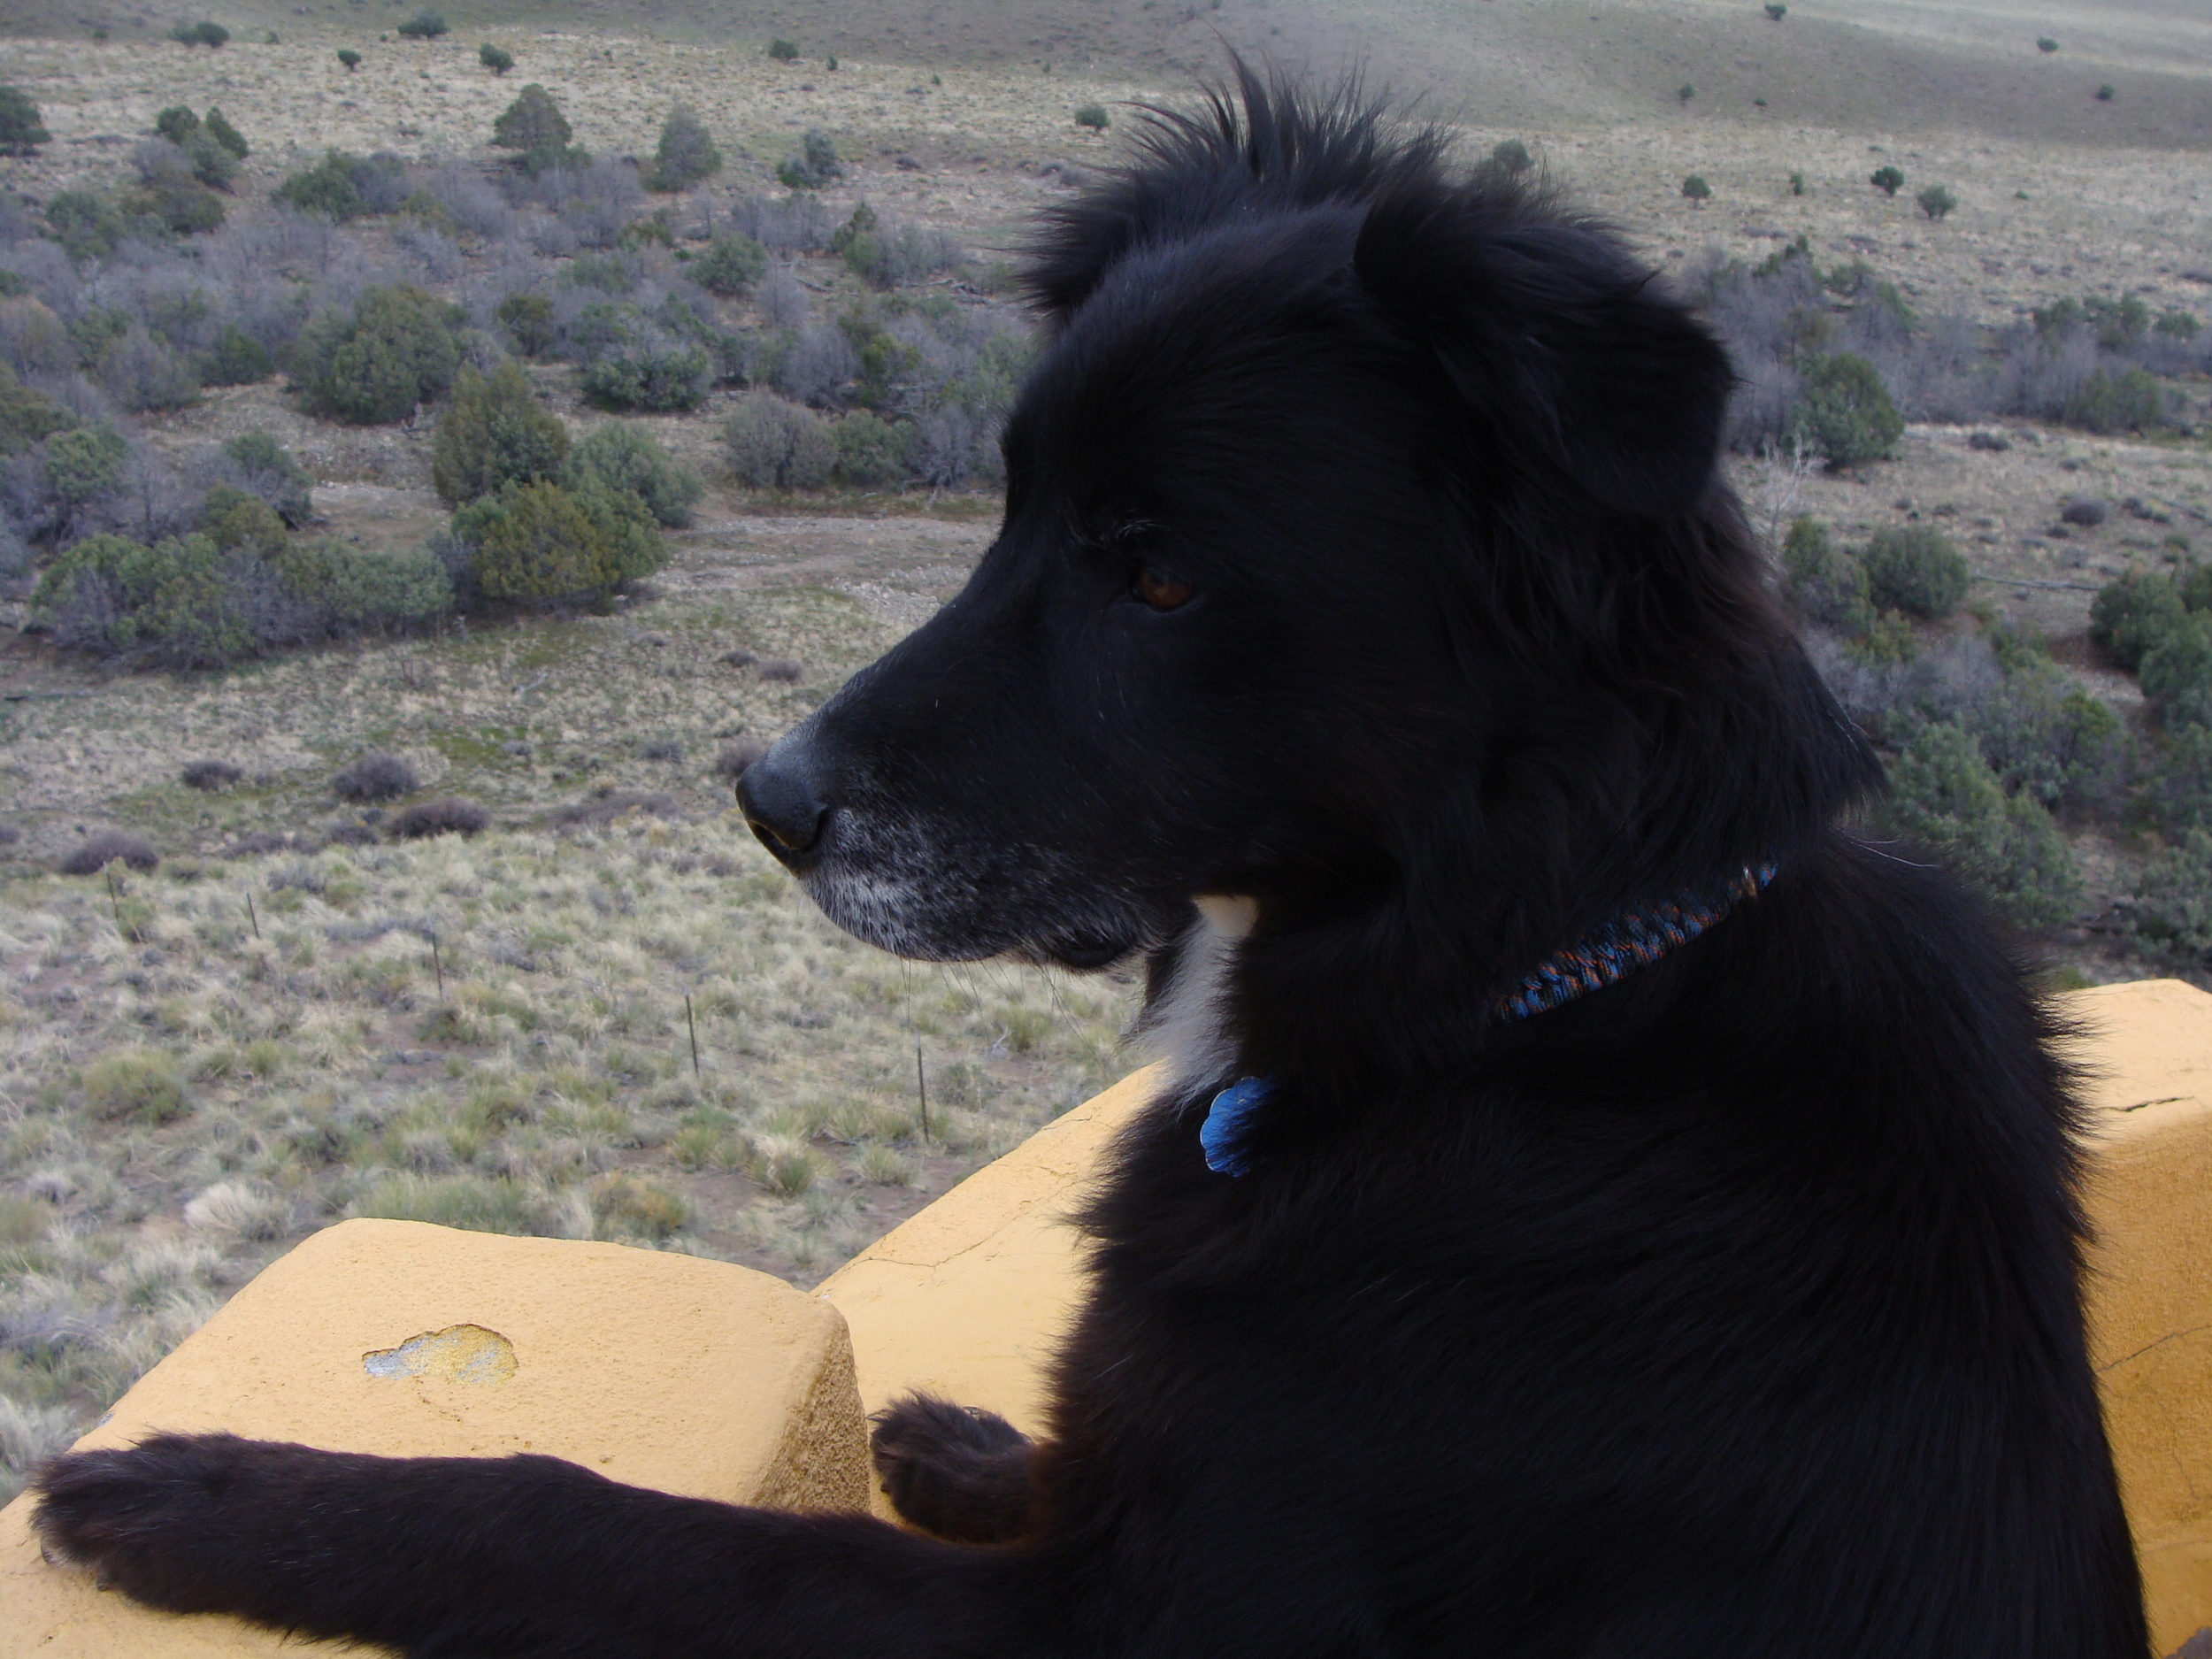 Luke enjoys the scenery from our hike to the Ziggurat while he contemplates the state of our world